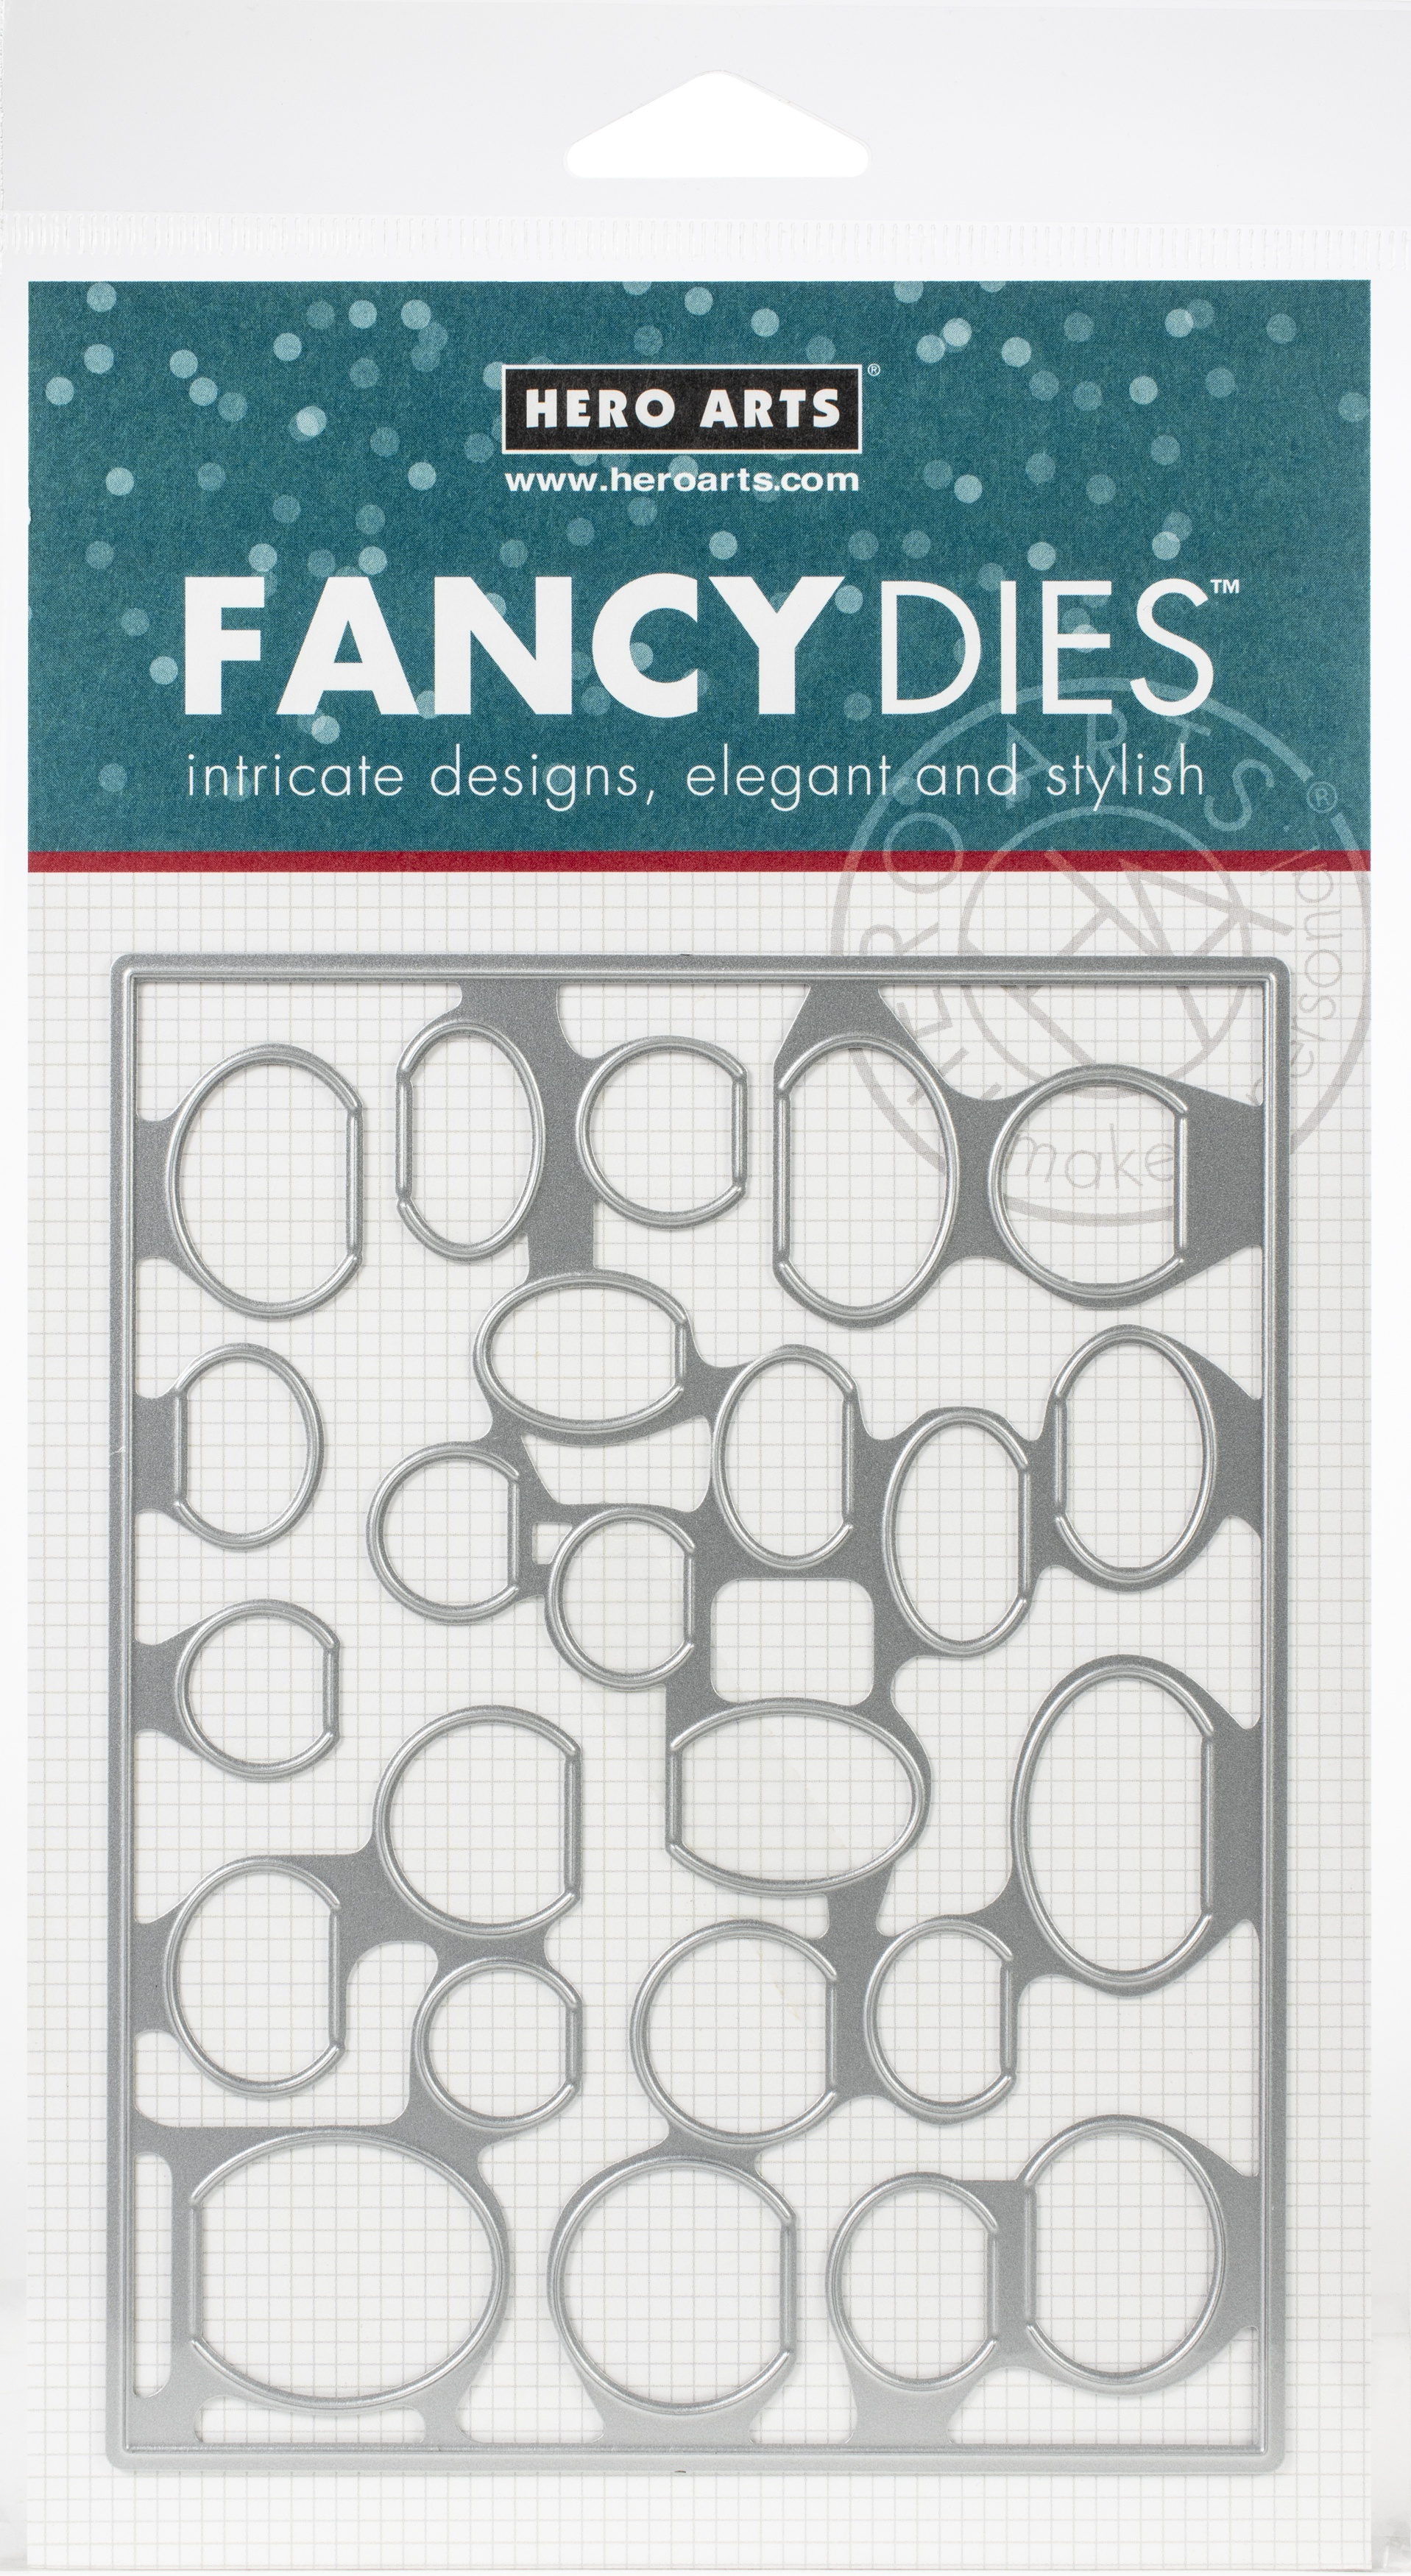 Hero Arts Fancy Dies-Circular Peek-A-Boo Doors